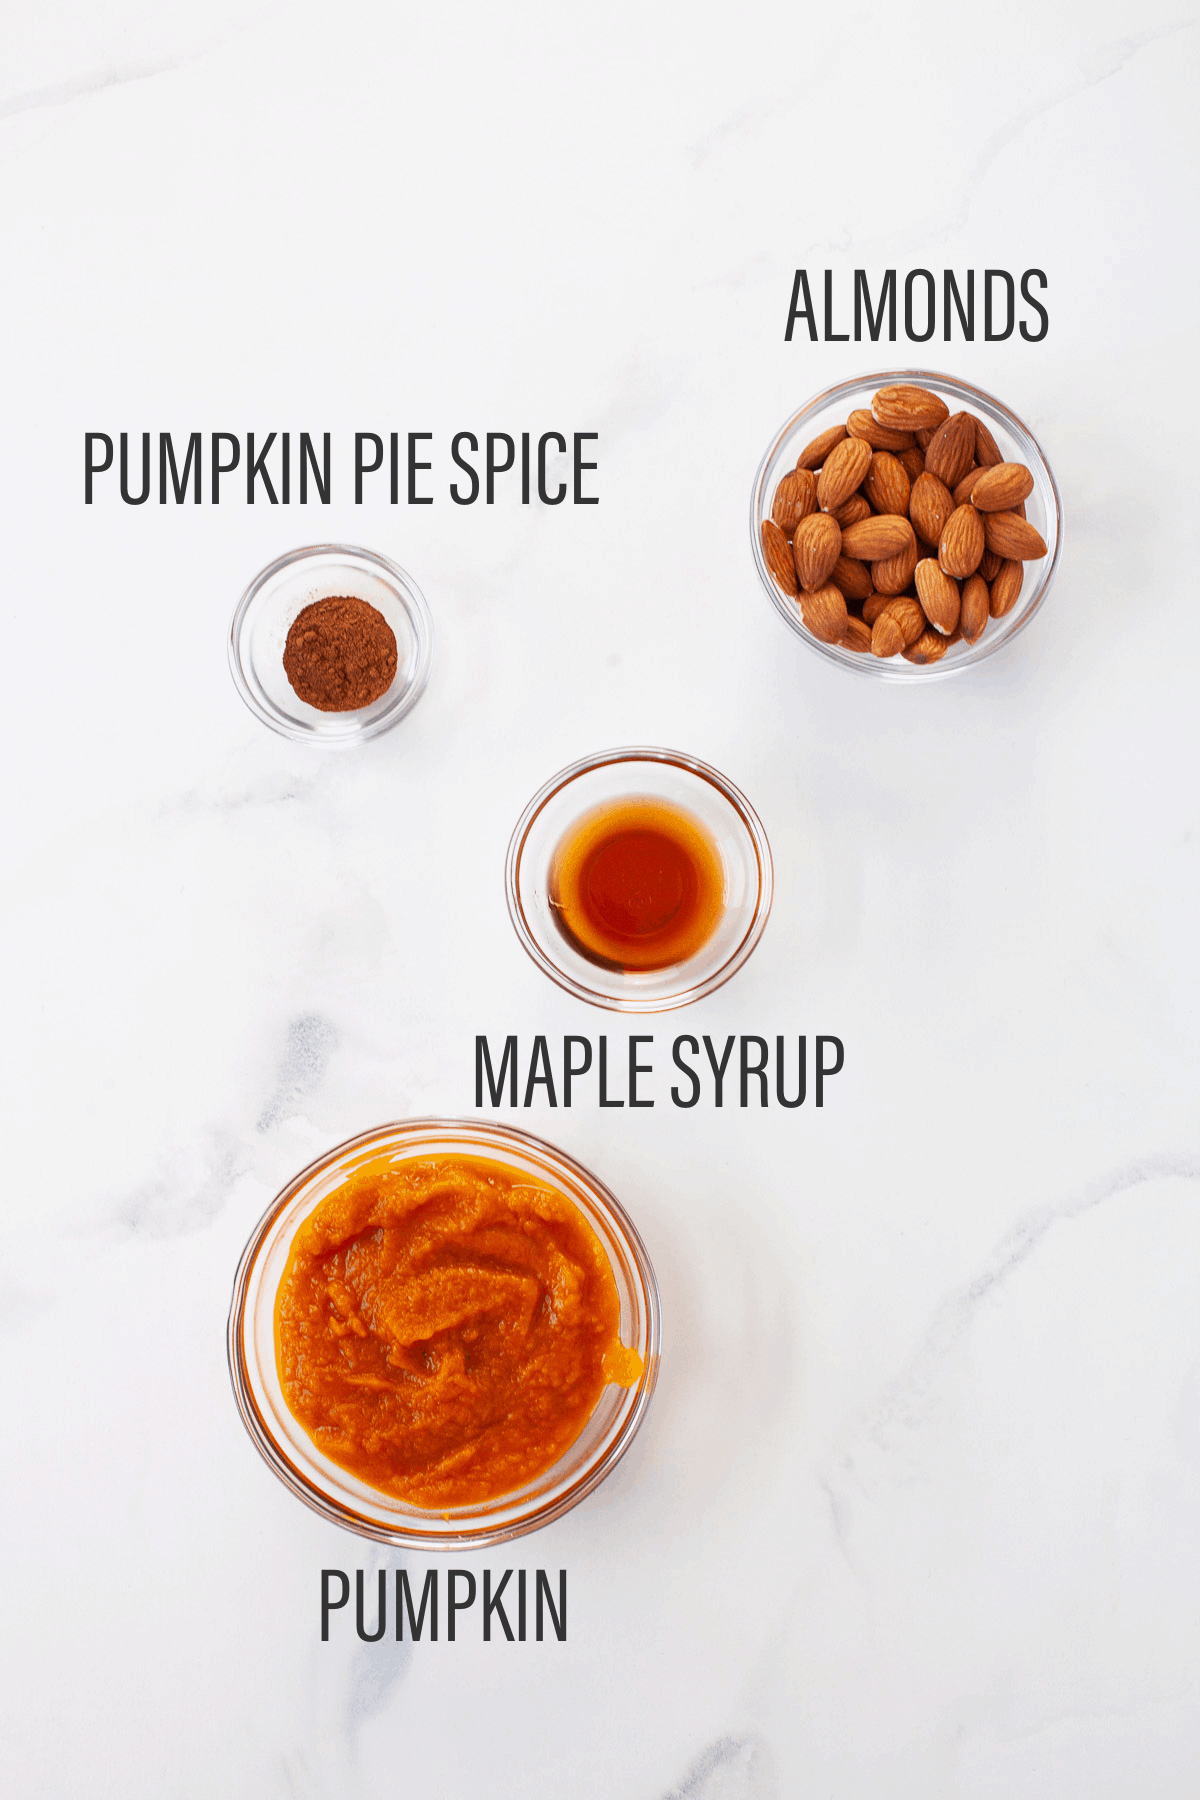 pumpkin pie spice, almond, maple syrup, and pumpkin separated in glass bowls